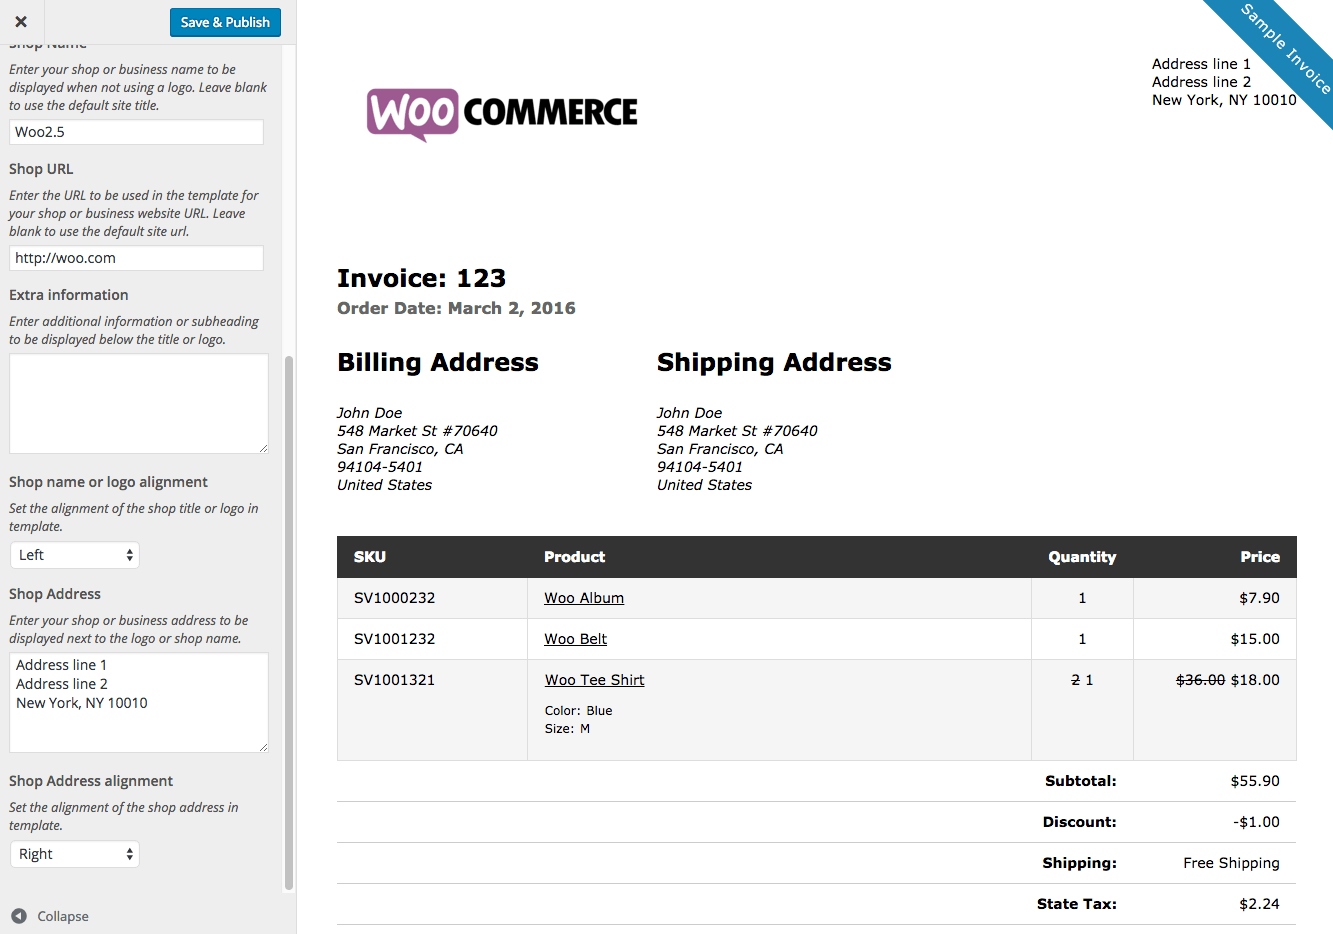 Reliefworkersus  Ravishing Woocommerce Print Invoices Amp Packing Lists  Woocommerce Docs With Glamorous Woocommerce Print Invoices  Packing Lists Customizer With Divine Fedex Tracking Number On Receipt Also Amazon Purchase Receipt In Addition Receipt Template Rent And Petrol Receipt Format As Well As How To Fill Out A Certified Mail Receipt Additionally Print Lic Premium Receipt From Docswoocommercecom With Reliefworkersus  Glamorous Woocommerce Print Invoices Amp Packing Lists  Woocommerce Docs With Divine Woocommerce Print Invoices  Packing Lists Customizer And Ravishing Fedex Tracking Number On Receipt Also Amazon Purchase Receipt In Addition Receipt Template Rent From Docswoocommercecom